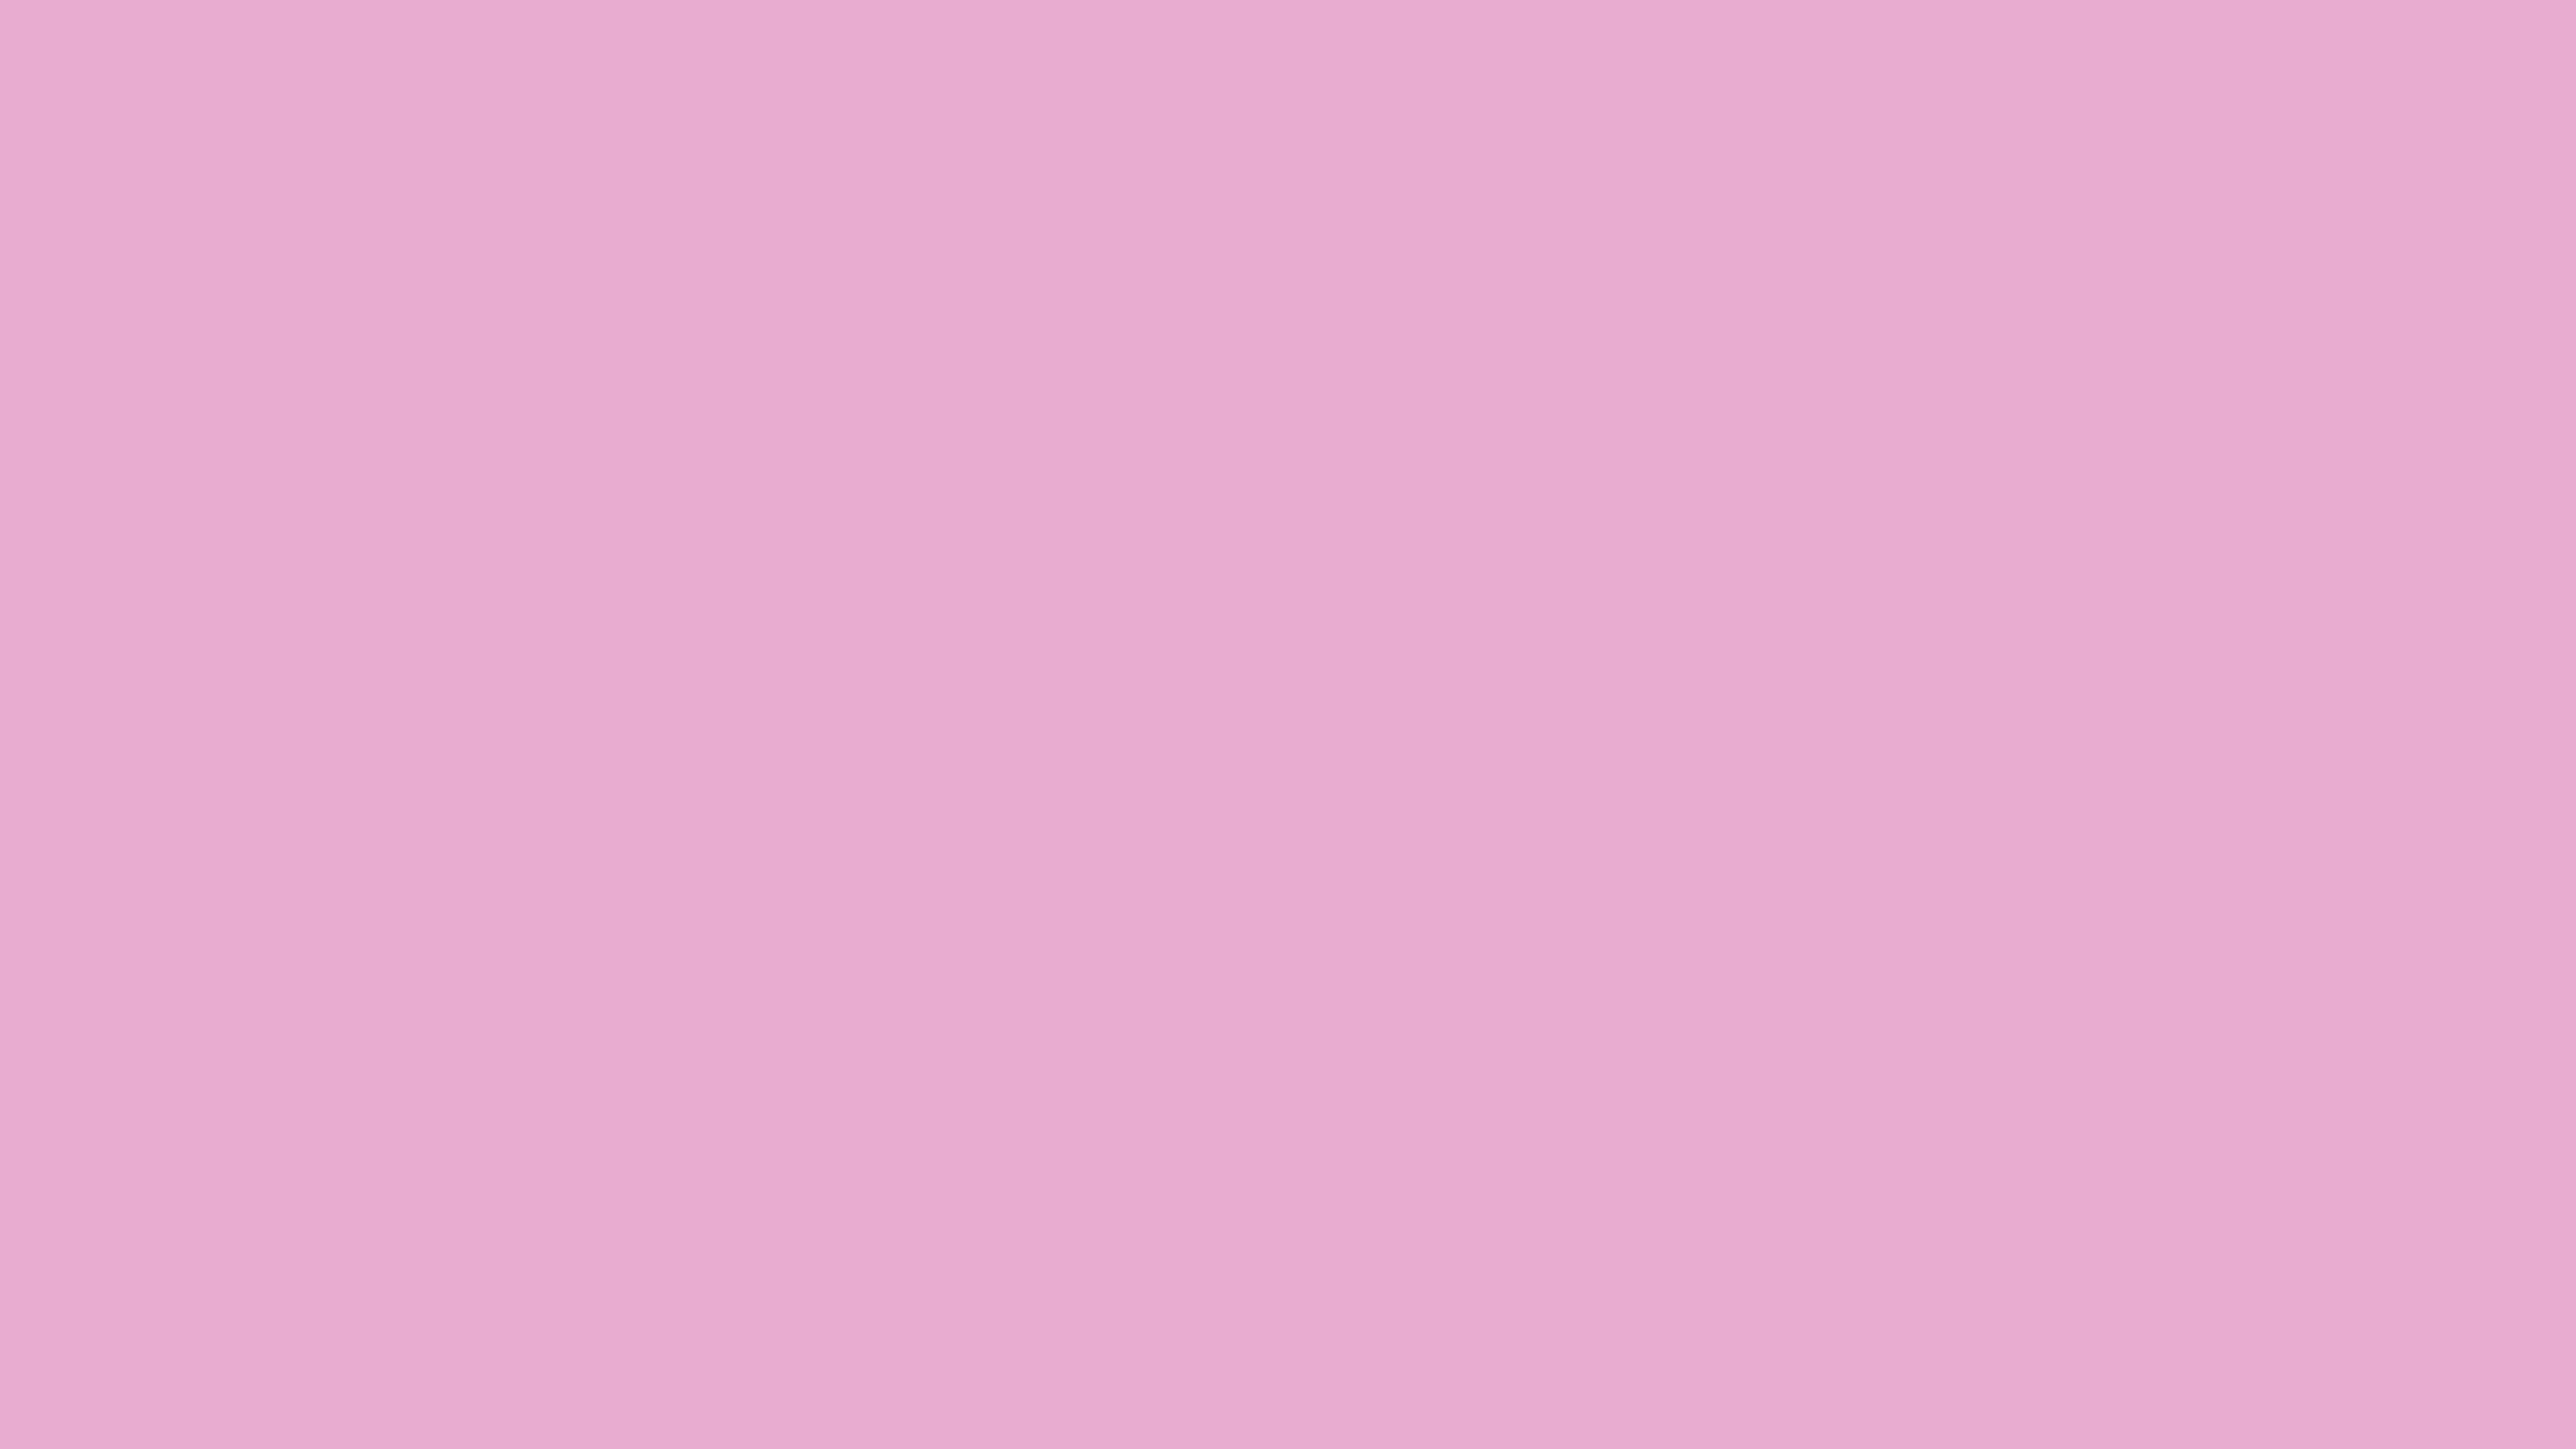 3840x2160 Pink Pearl Solid Color Background